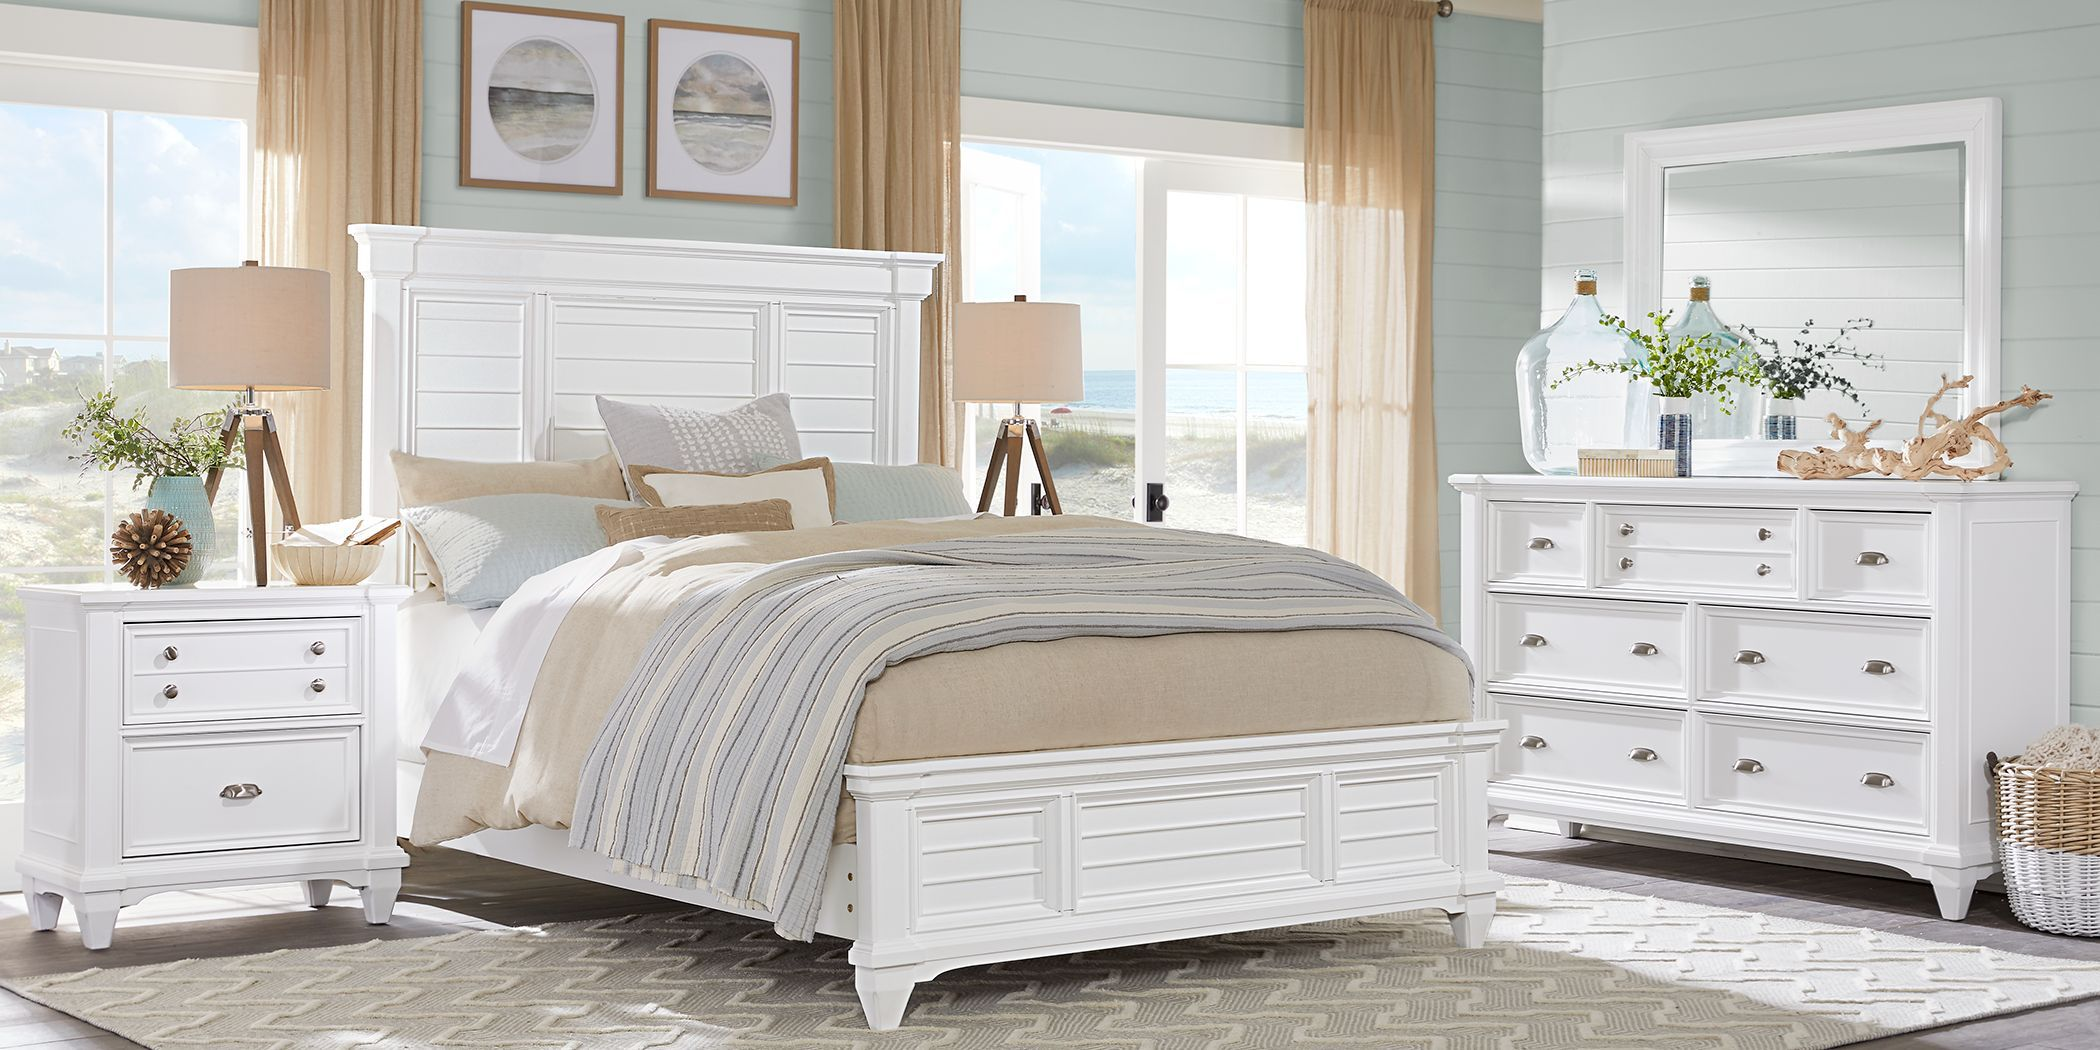 Hilton Head White 3 Pc King Panel Bed Rooms To Go In 2020 Bedroom Panel White Bedroom Set Bedroom Furniture Sets